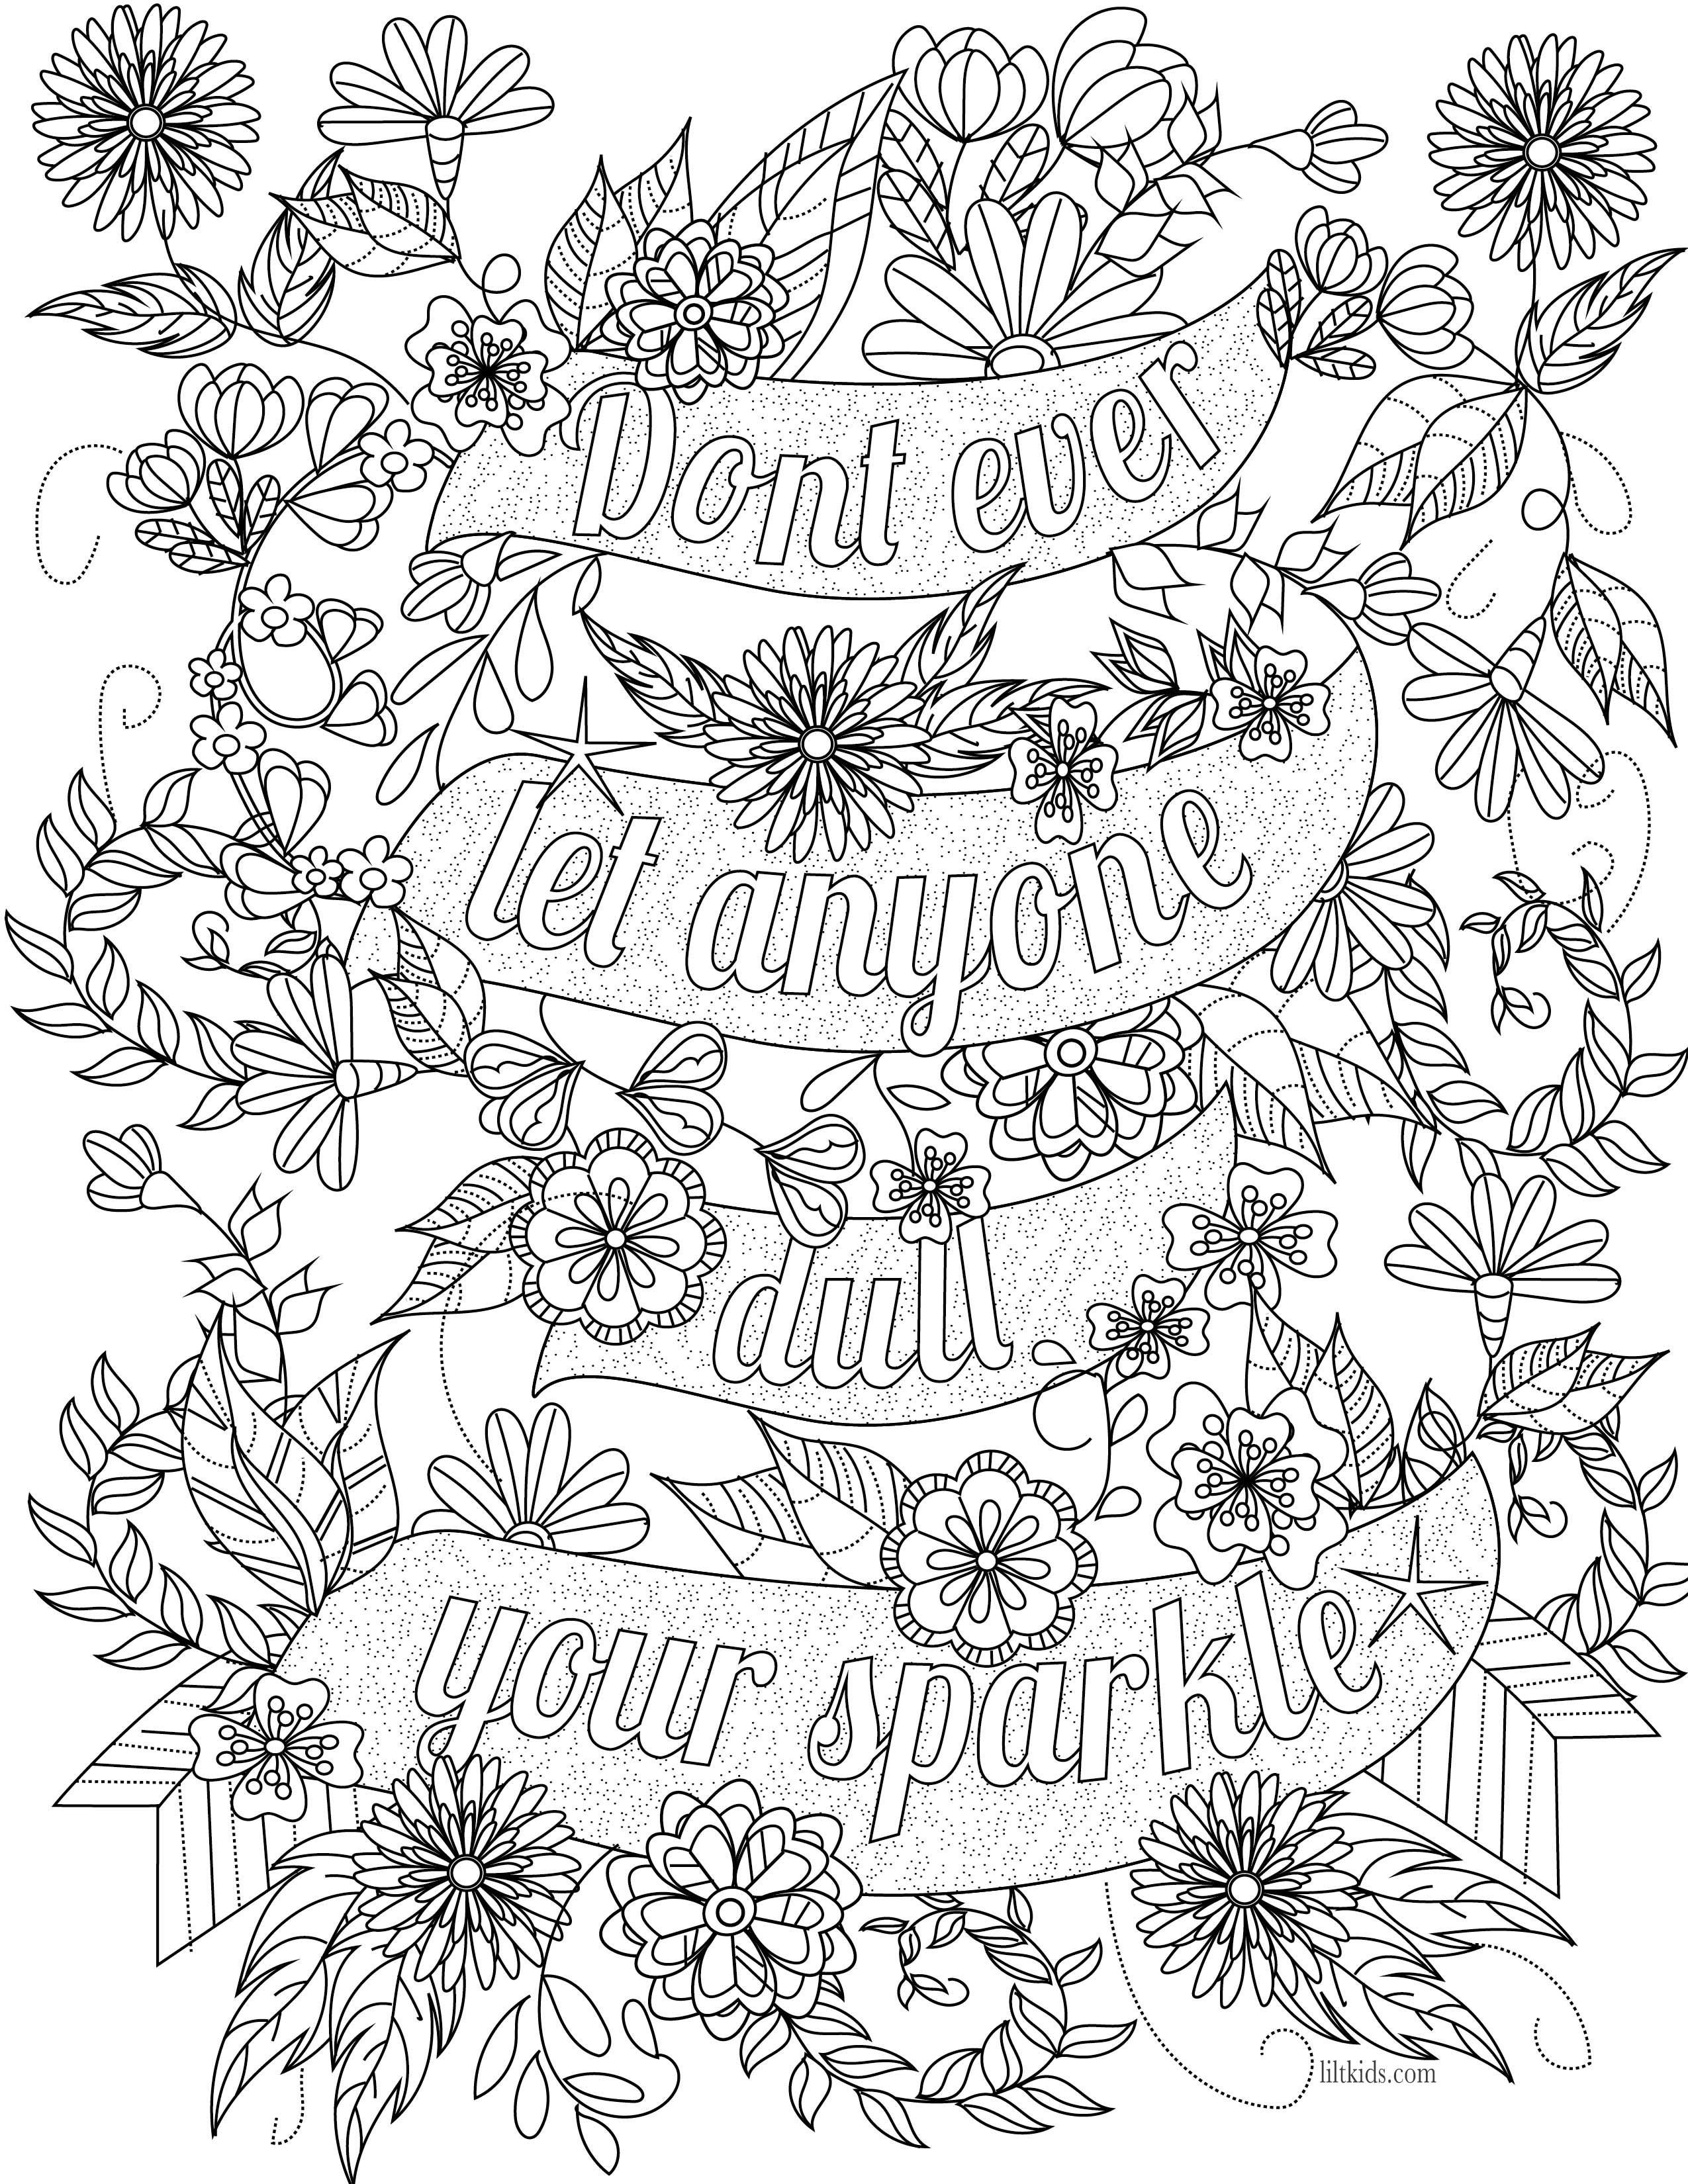 free adult coloring apps | printables | Pinterest | Adult coloring ...